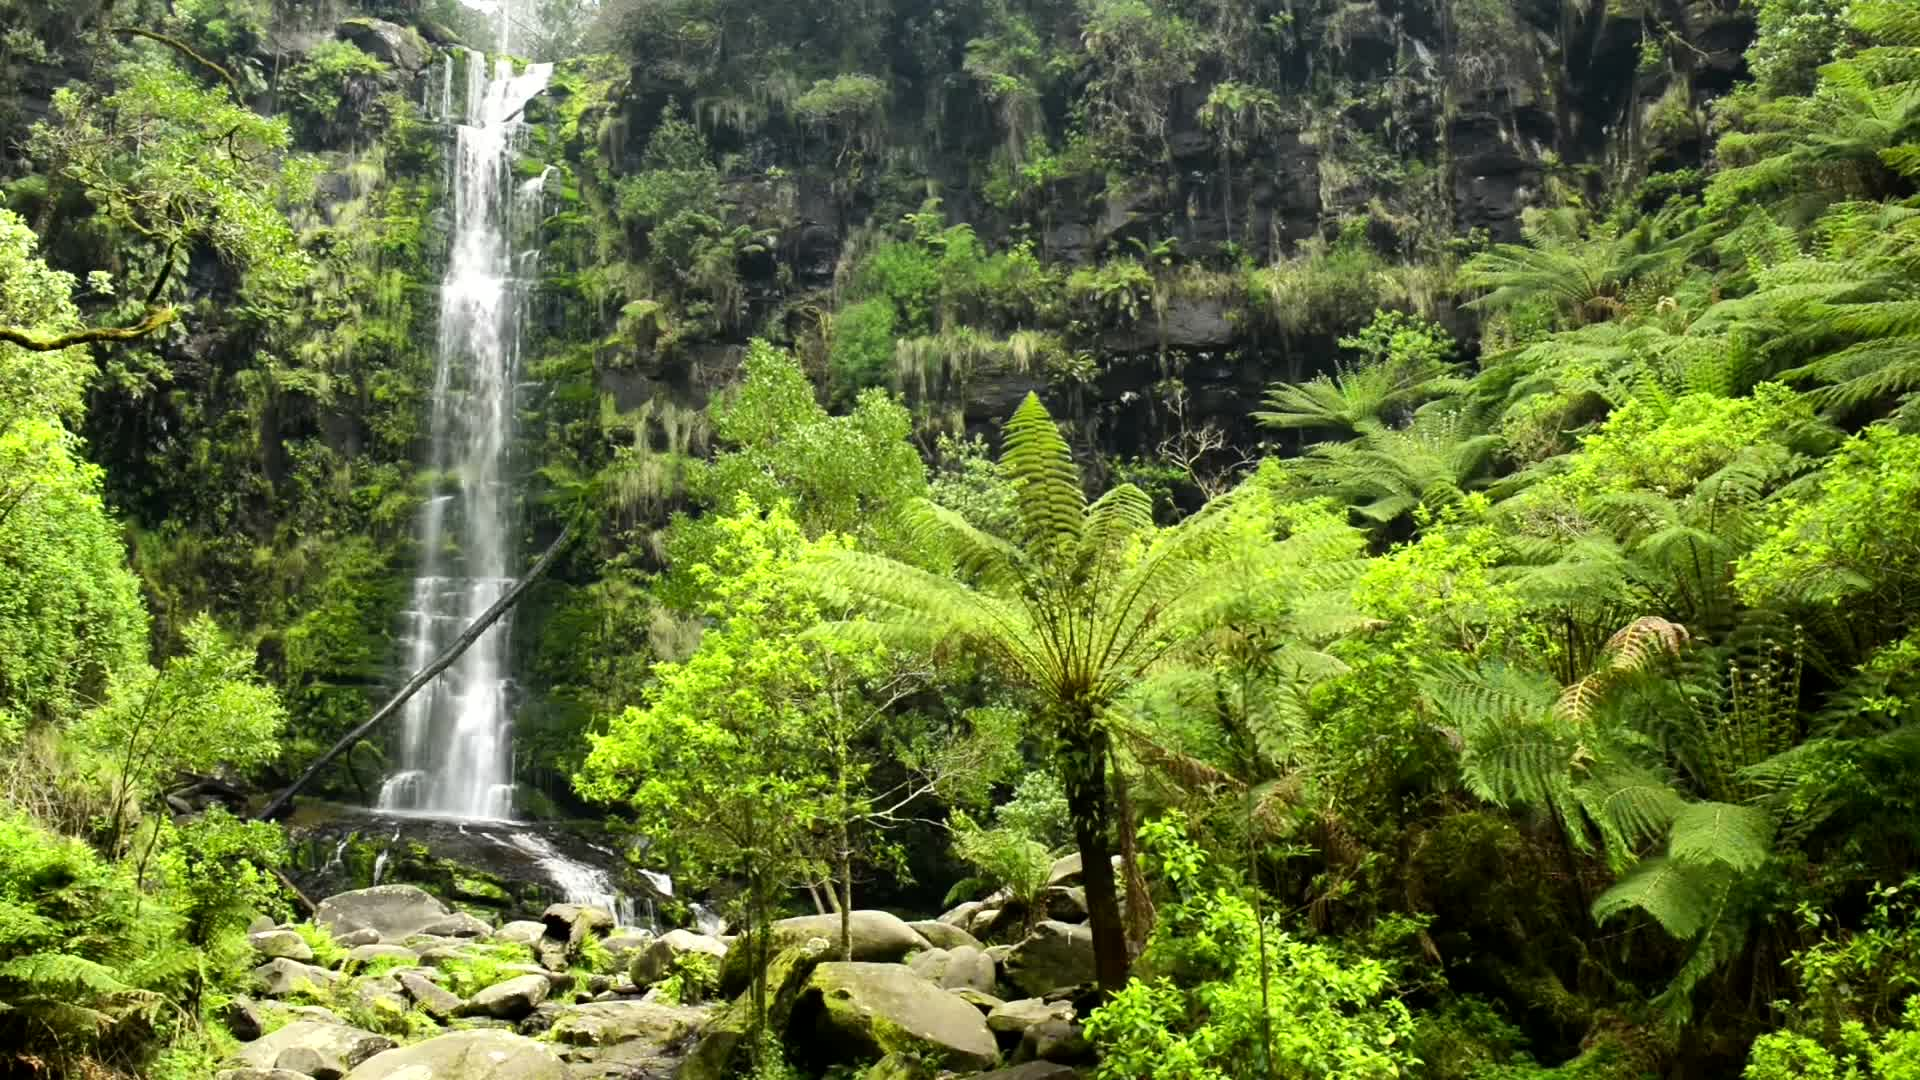 🎧 Waterfall Rainforest Ambient Sound Relaxing Forest Jungle Nature Sounds  For Relaxation